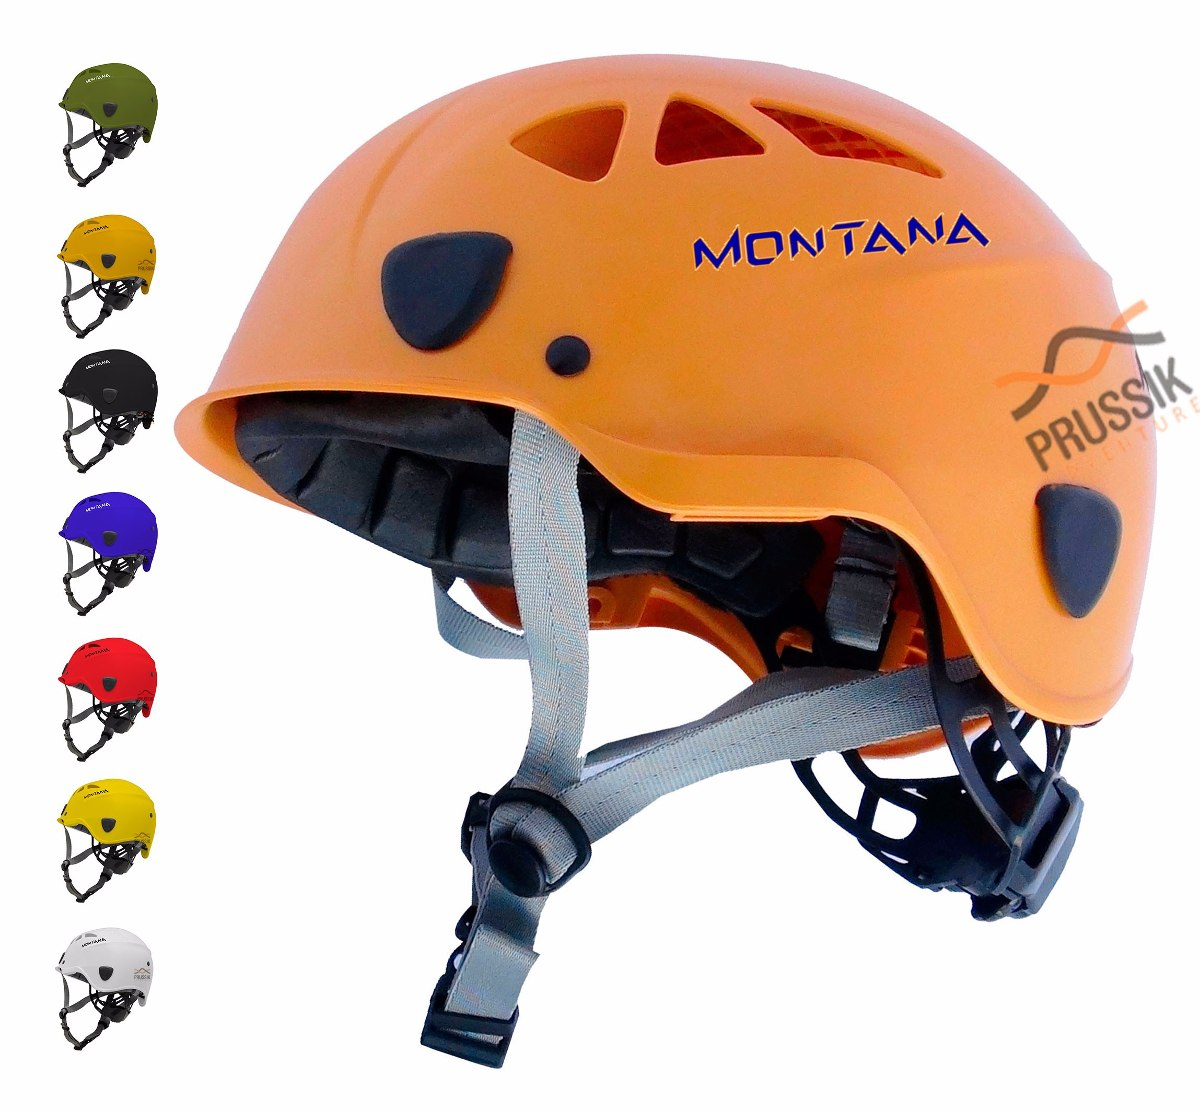 capacete-ares-montana-classe-a-tipo-3-inmetro-com-nf-108201-MLB20301091266_052015-F